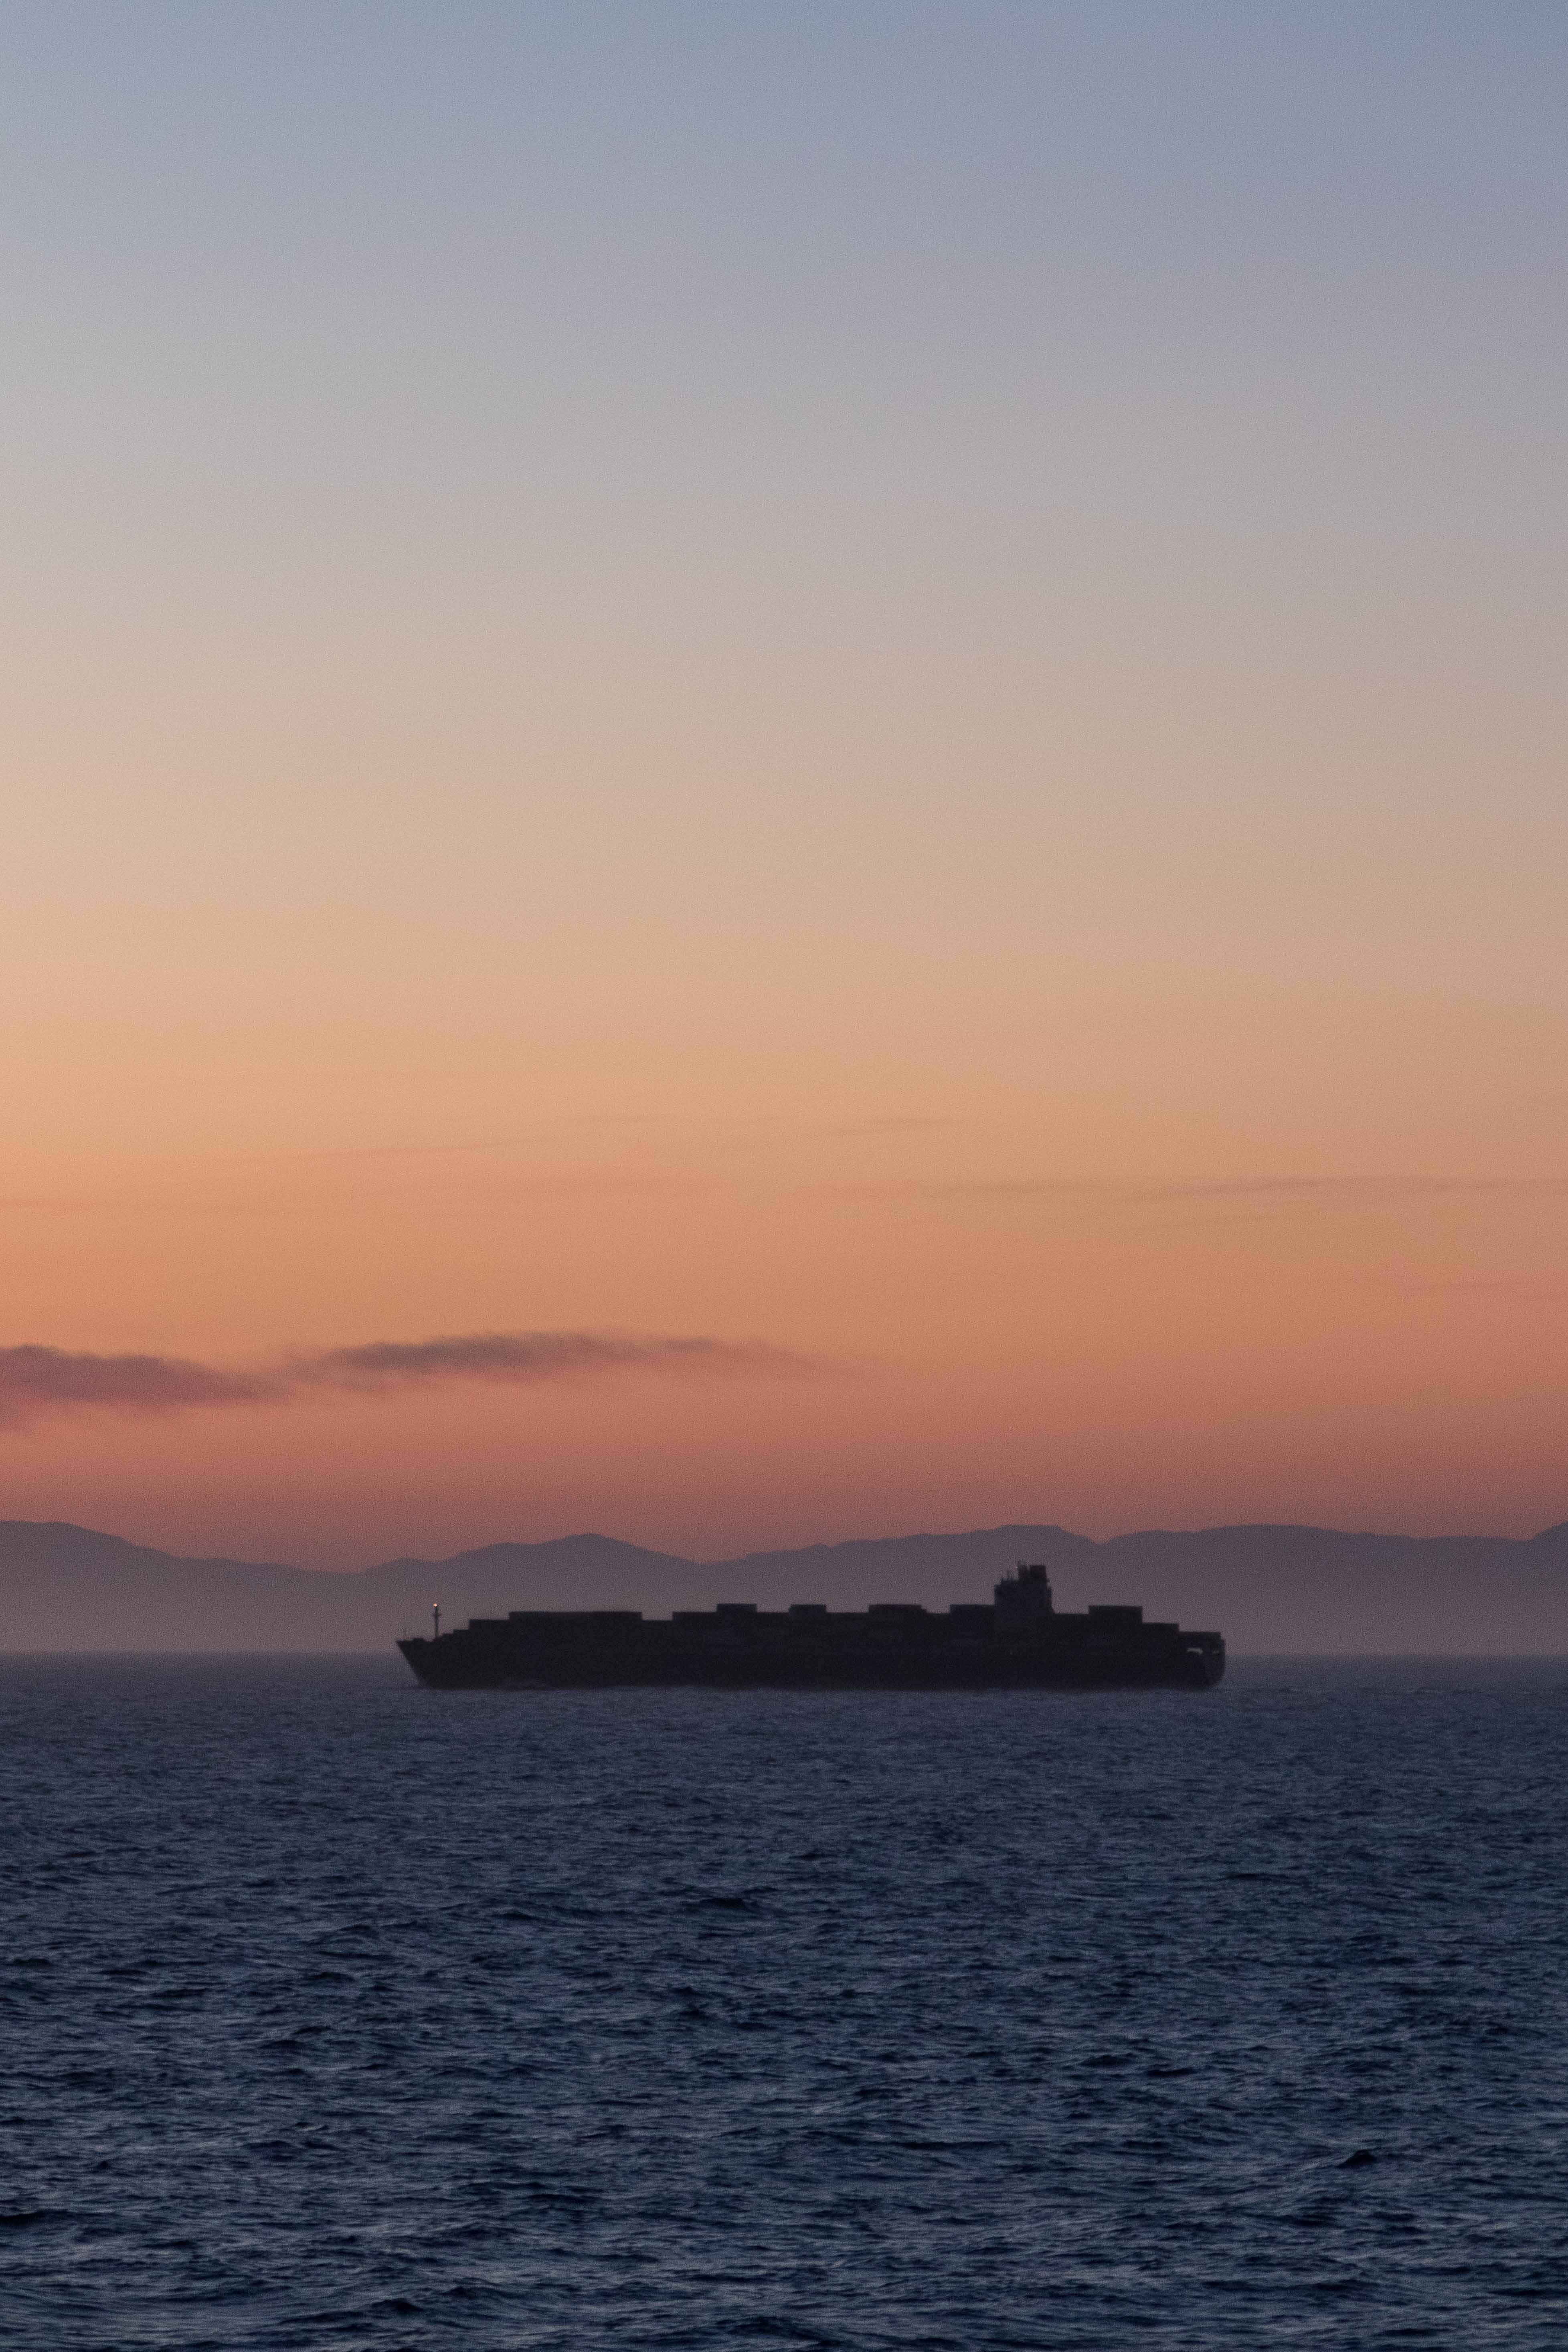 Mediterranean Cruise Boat Silhouette at Golden Hour | https://www.roseclearfield.com